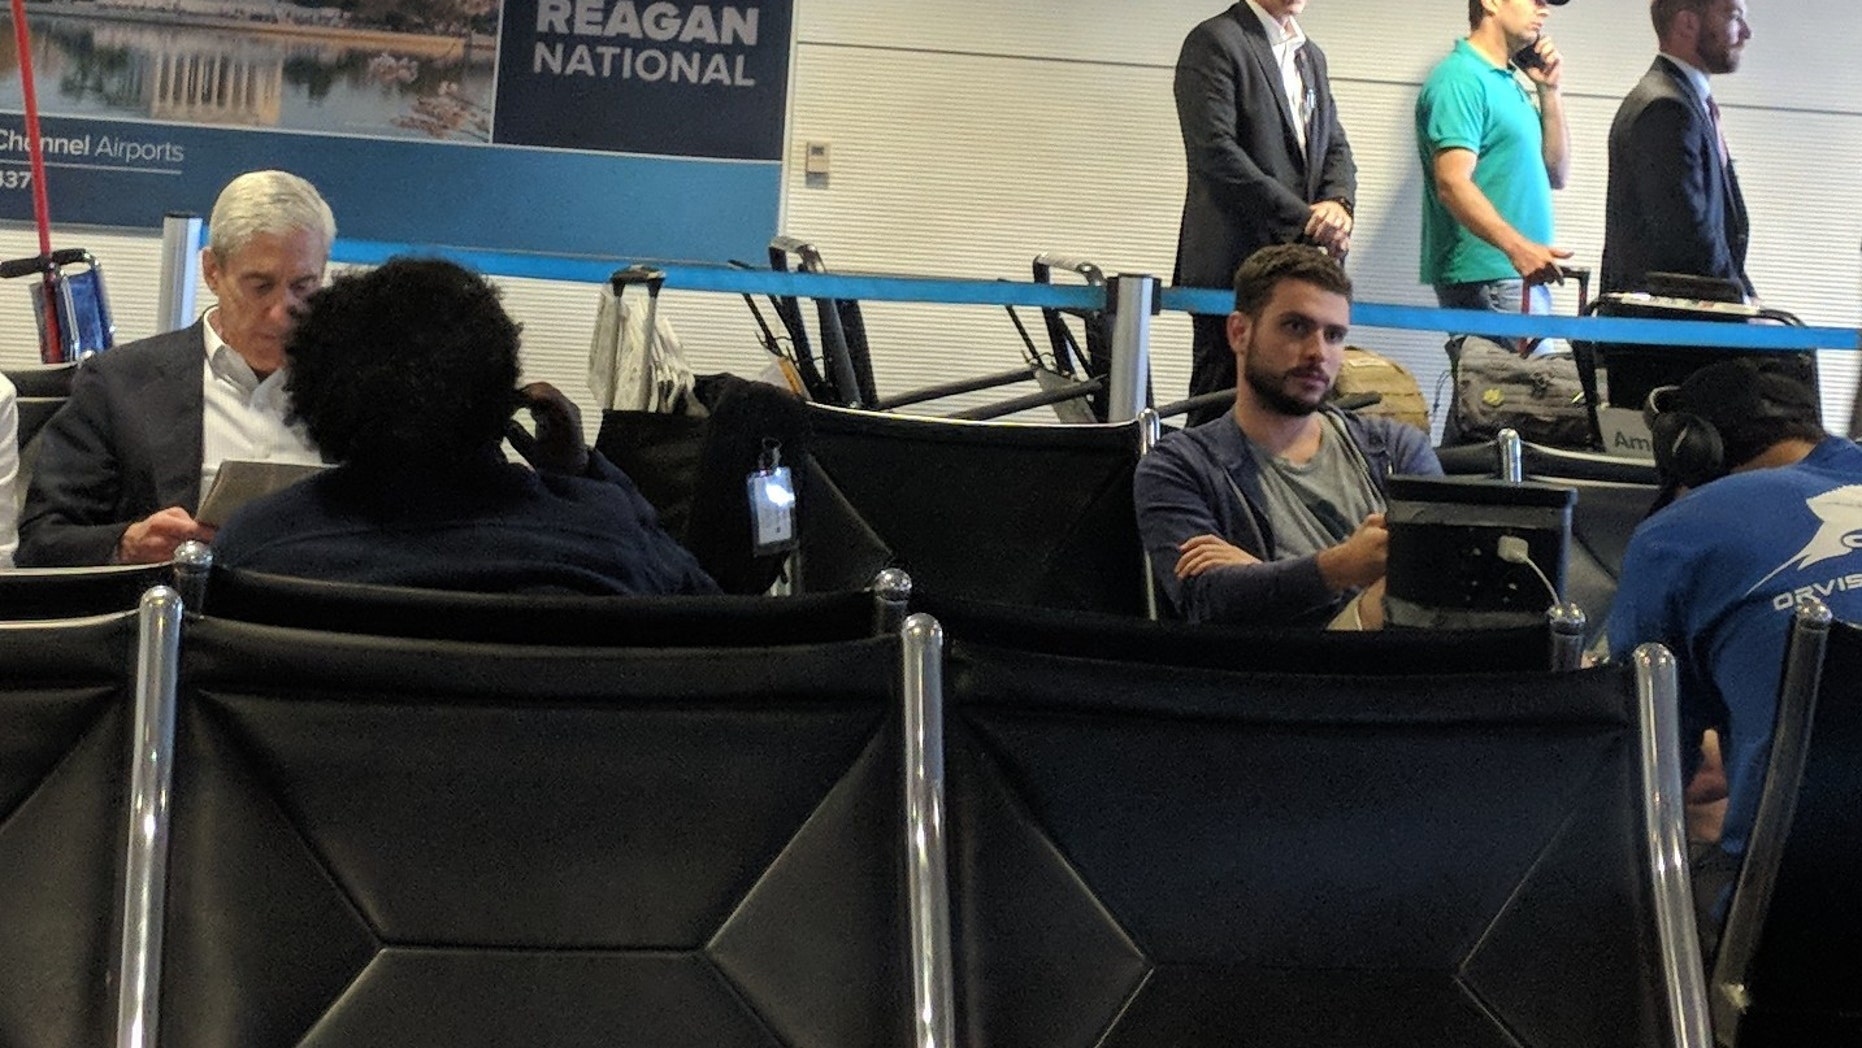 A photo obtained by POLITICO Playbook caught Special Counsel Robert Mueller (left) and Donald Trump Jr. (right) waiting in the same airport terminal leaving Reagan National Airport.